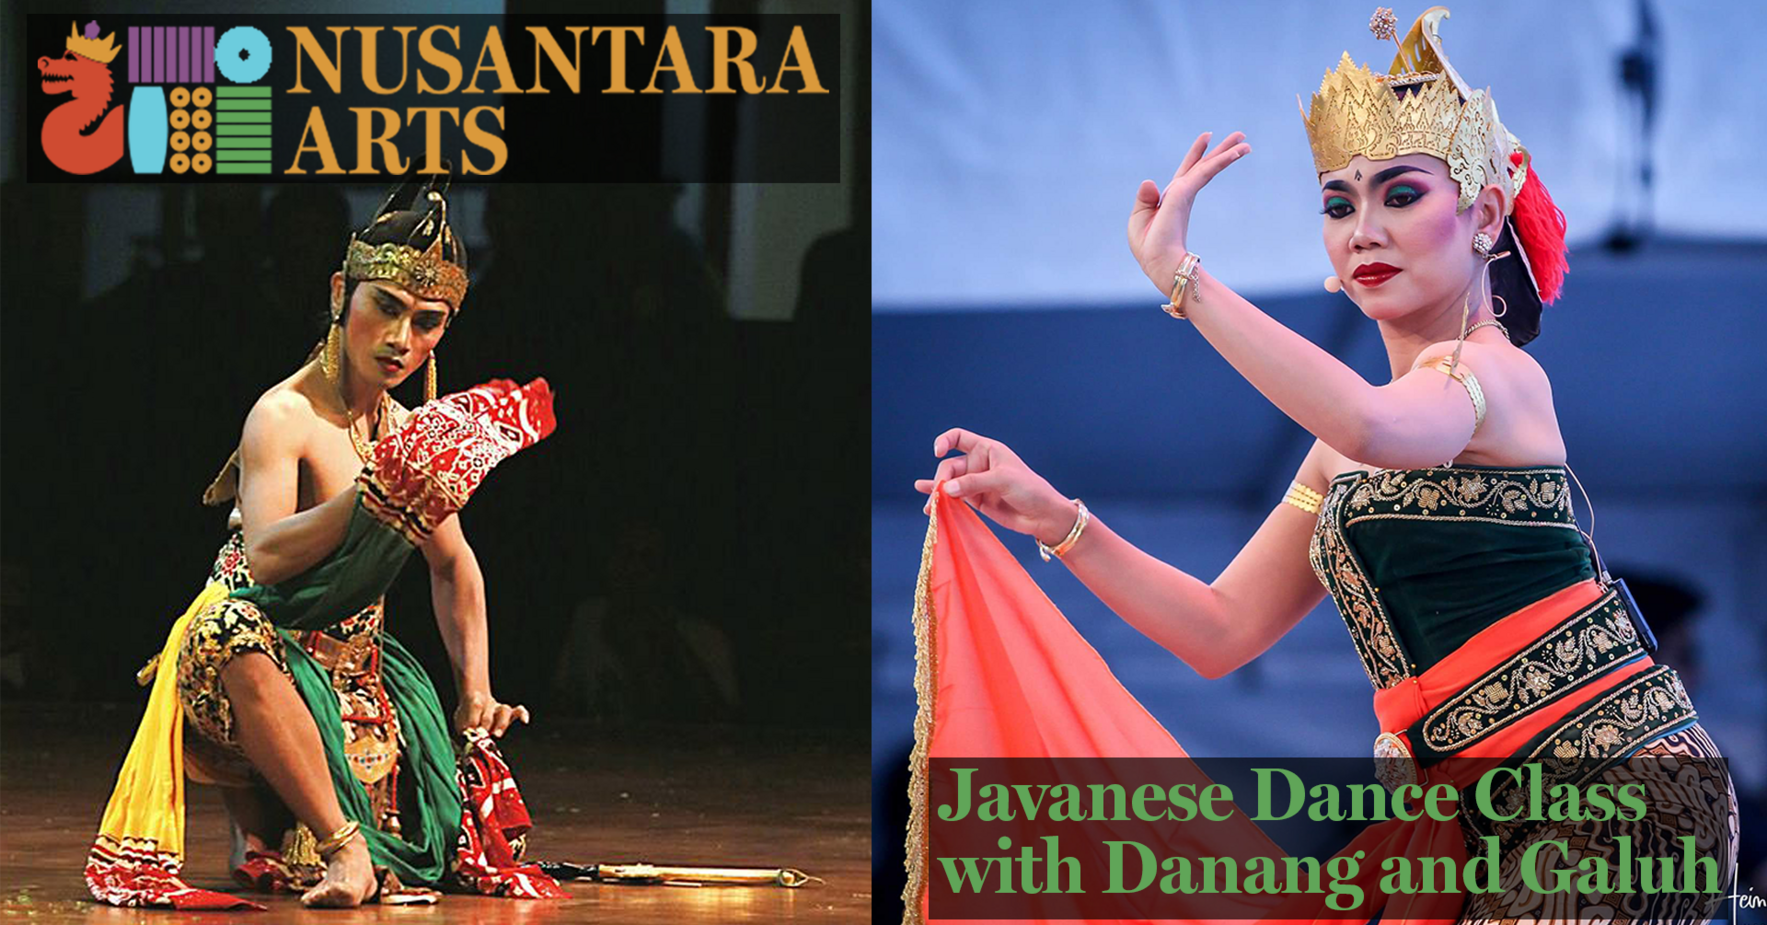 Javanese Dance with Danag and Galuh image